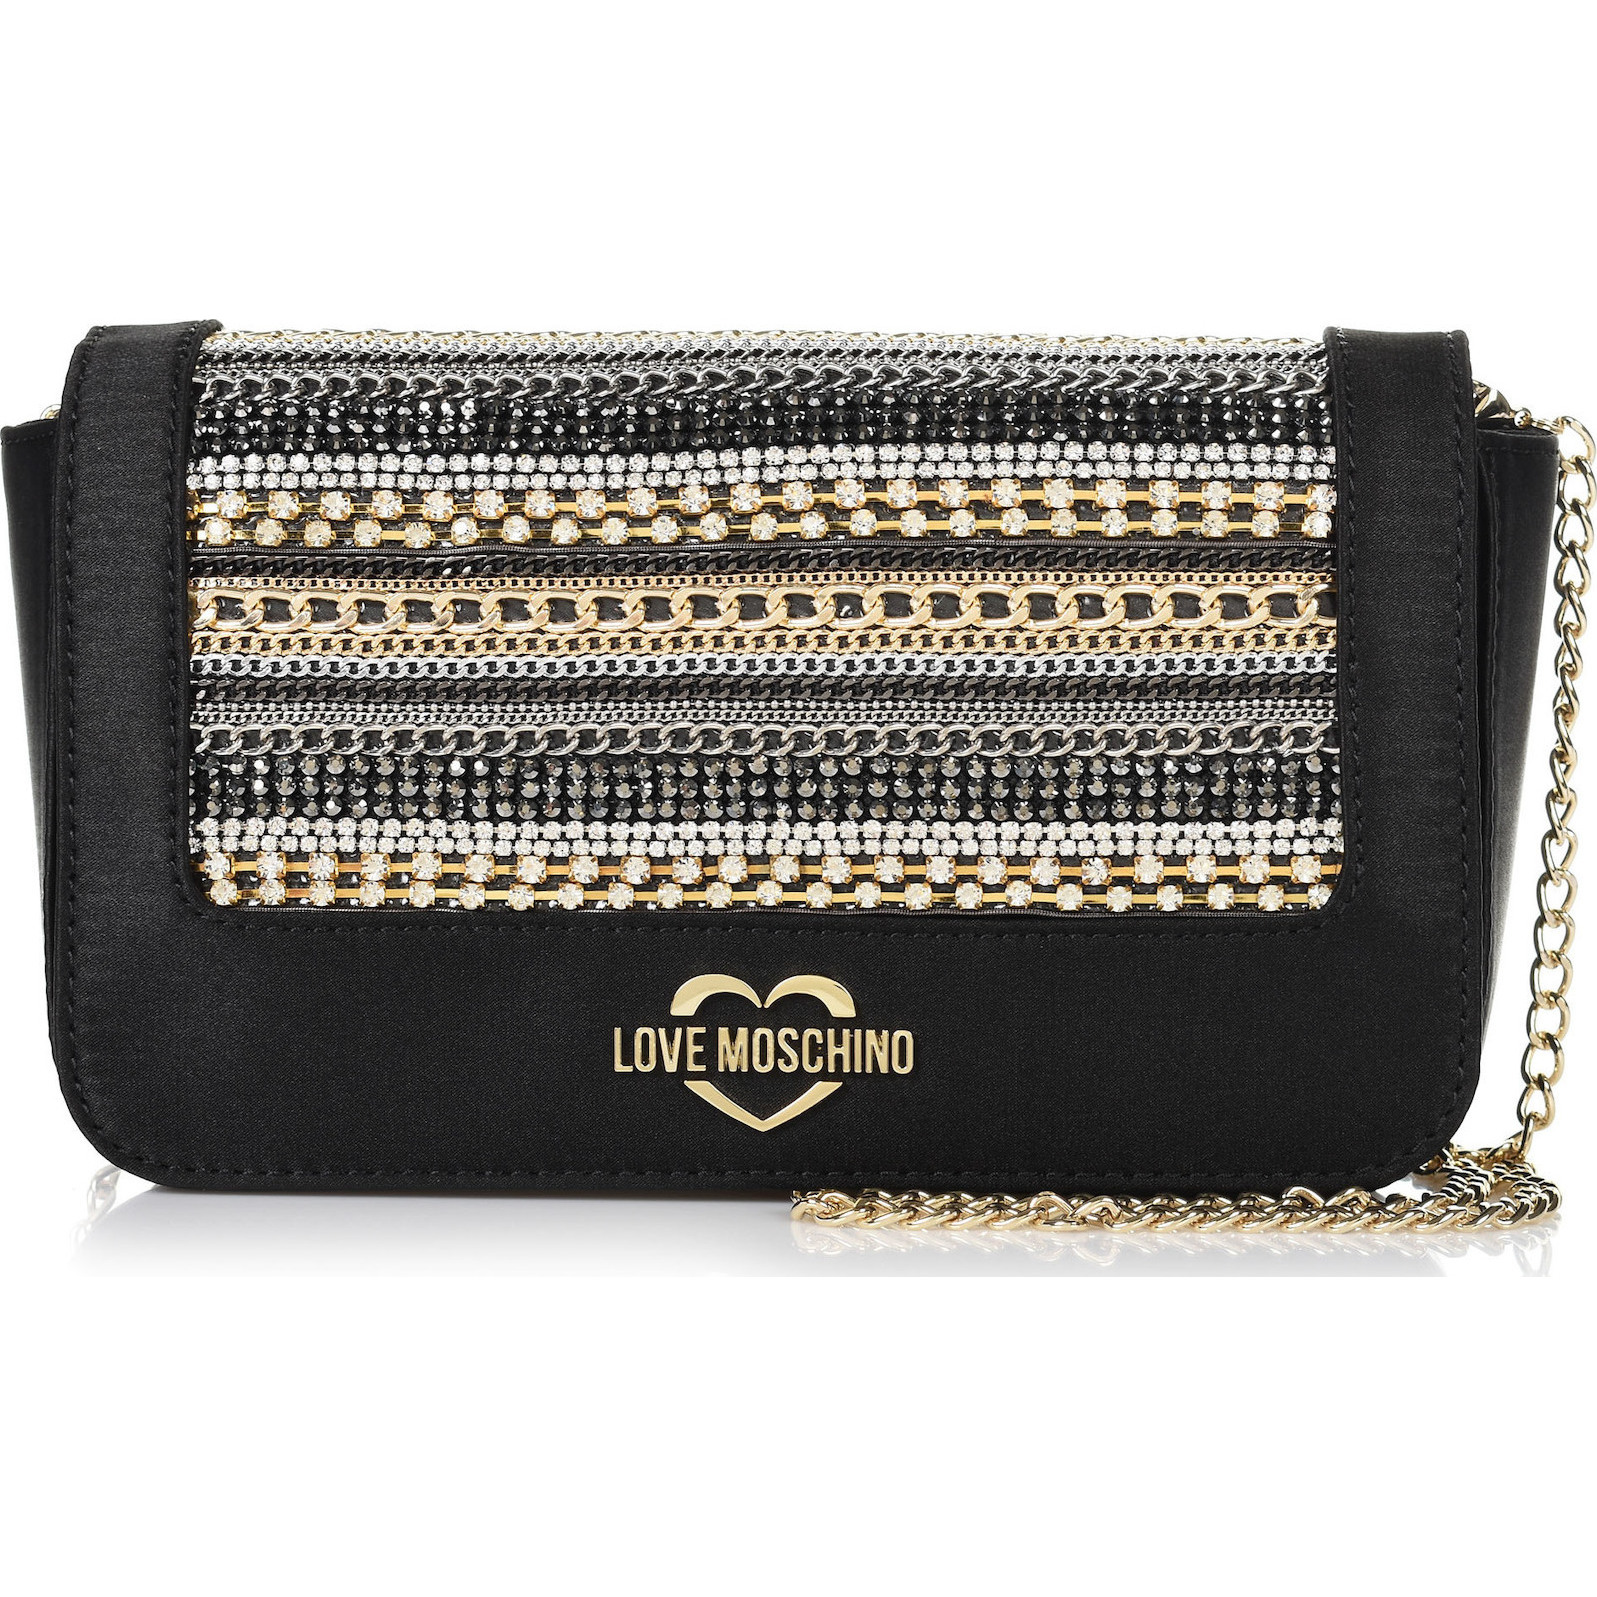 48f696d64613 ΤΣΑΝΤΑ LOVE MOSCHINO Ώμου-Χιαστί JC4151PP17LZ – Boutique Dil